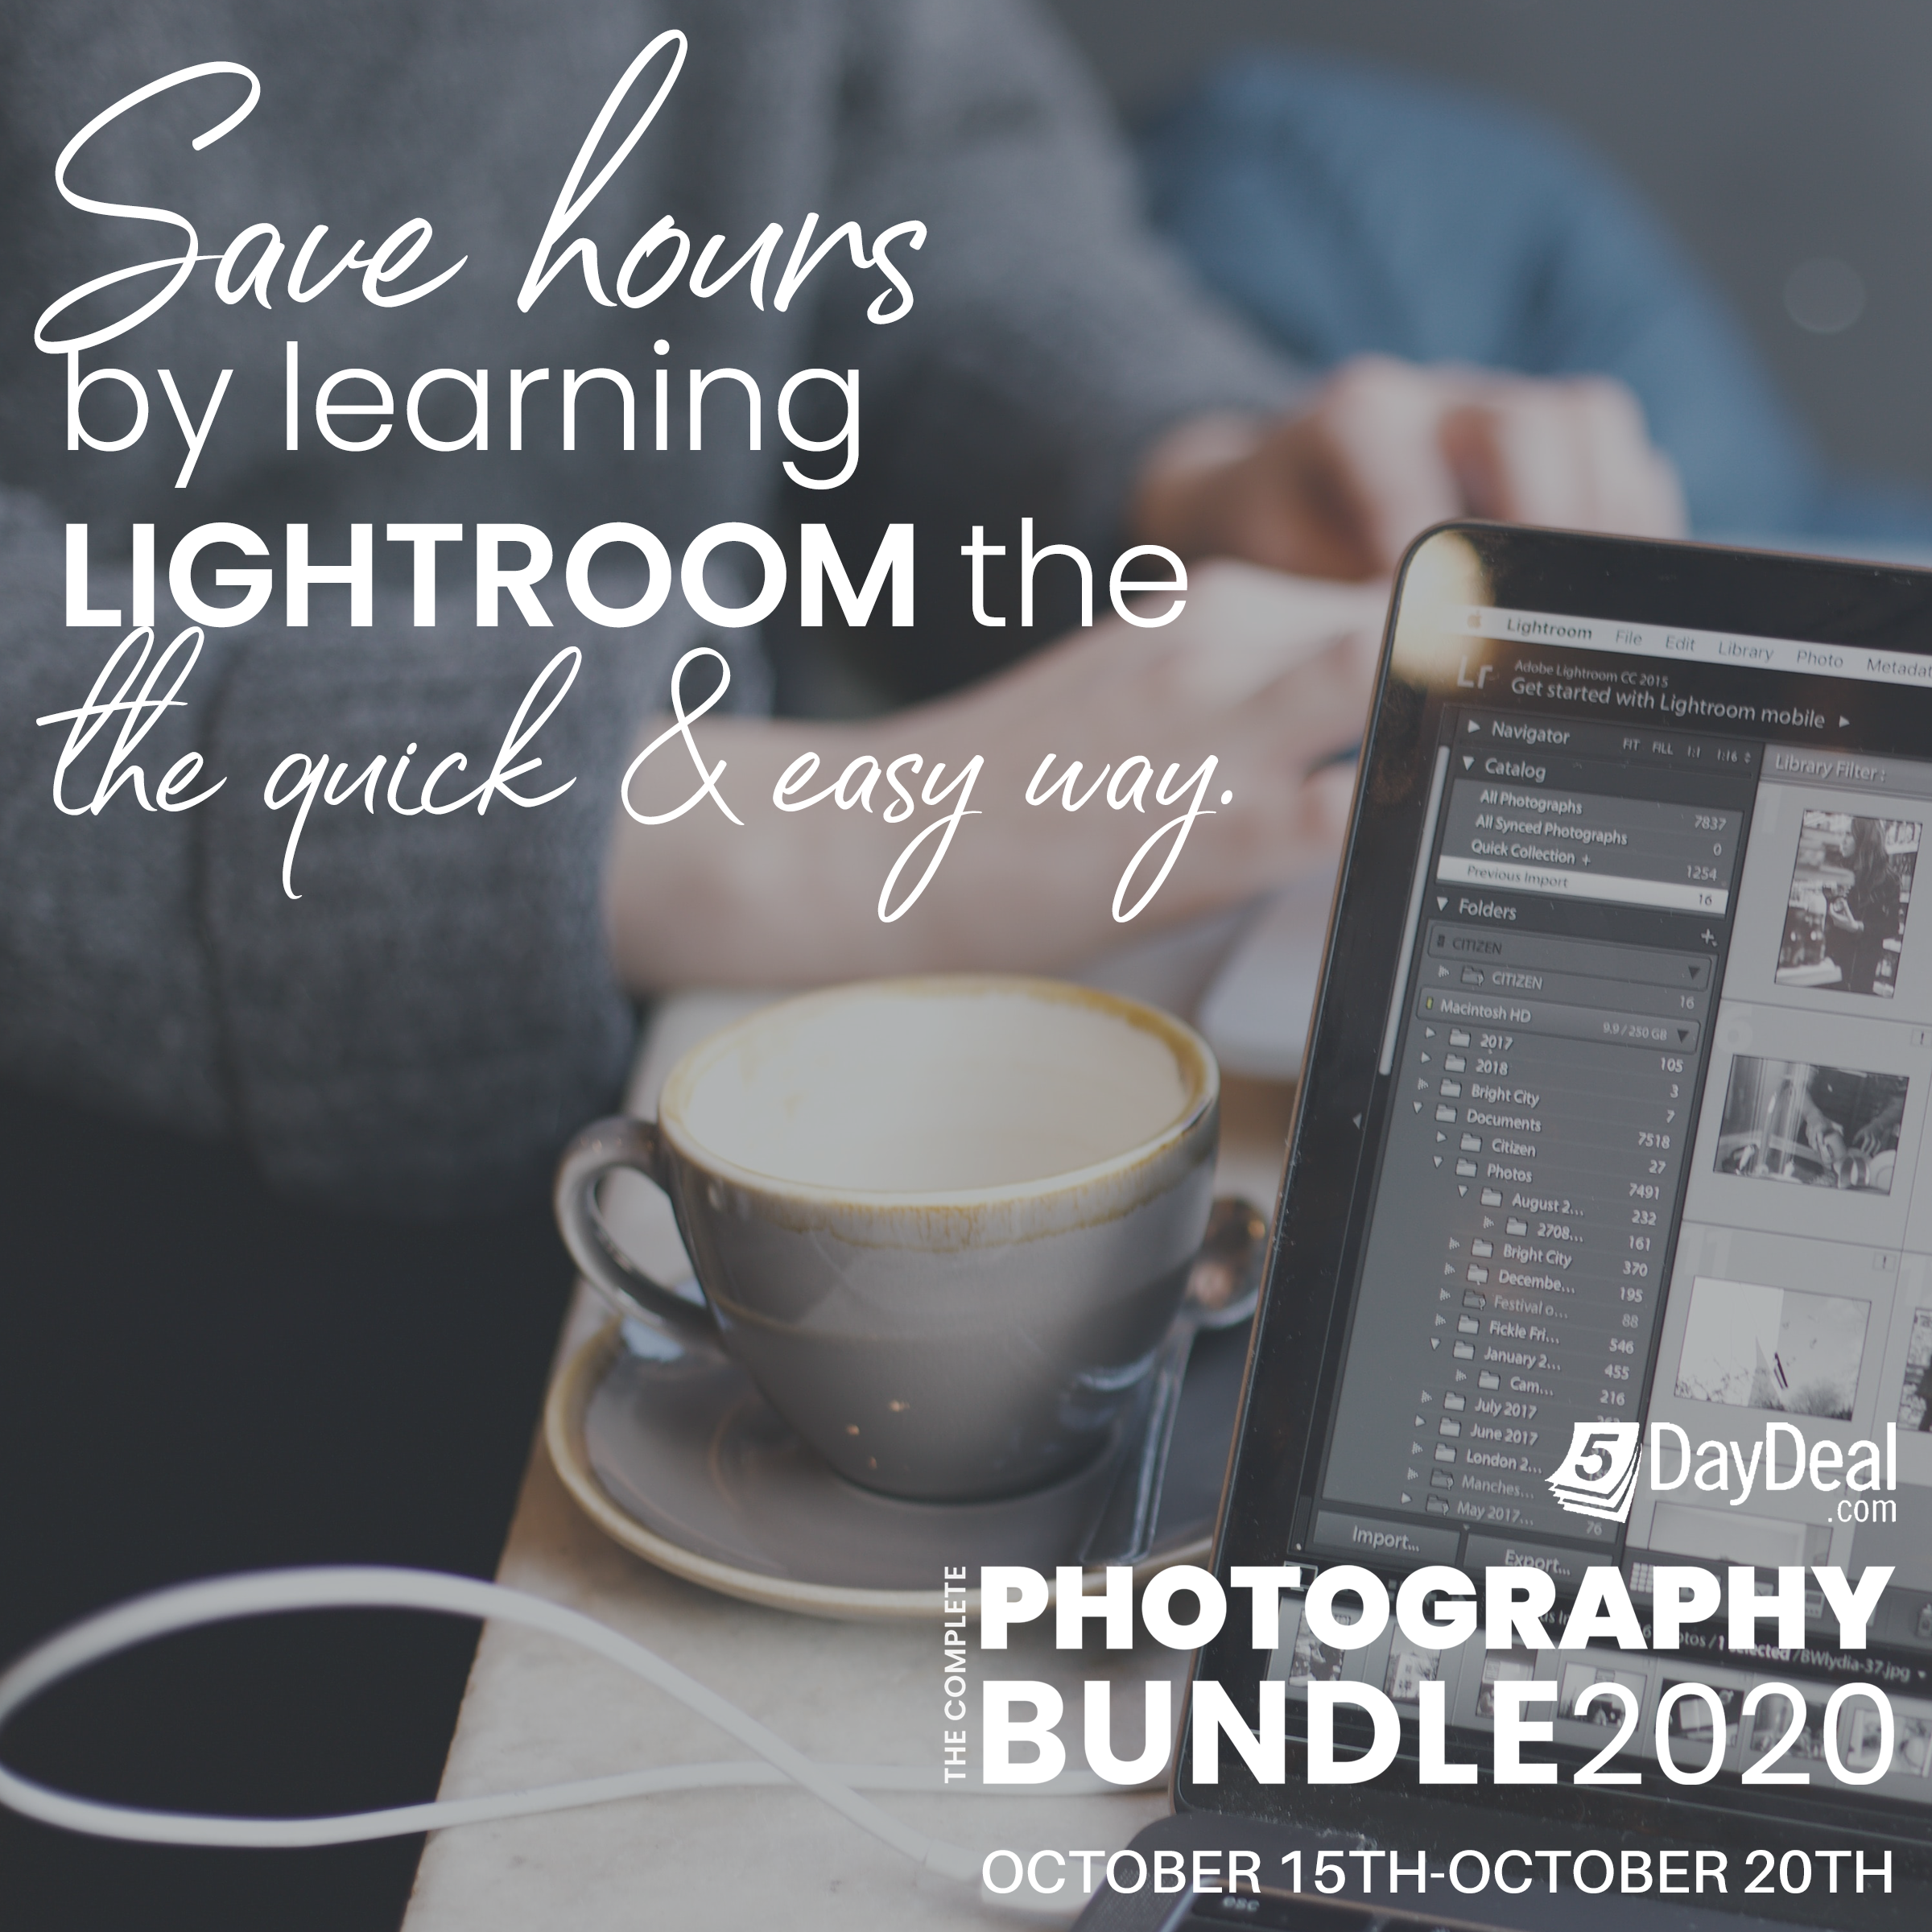 5DayDeal: The $89 Complete Photography Bundle 2020 WIll Soon Vanish